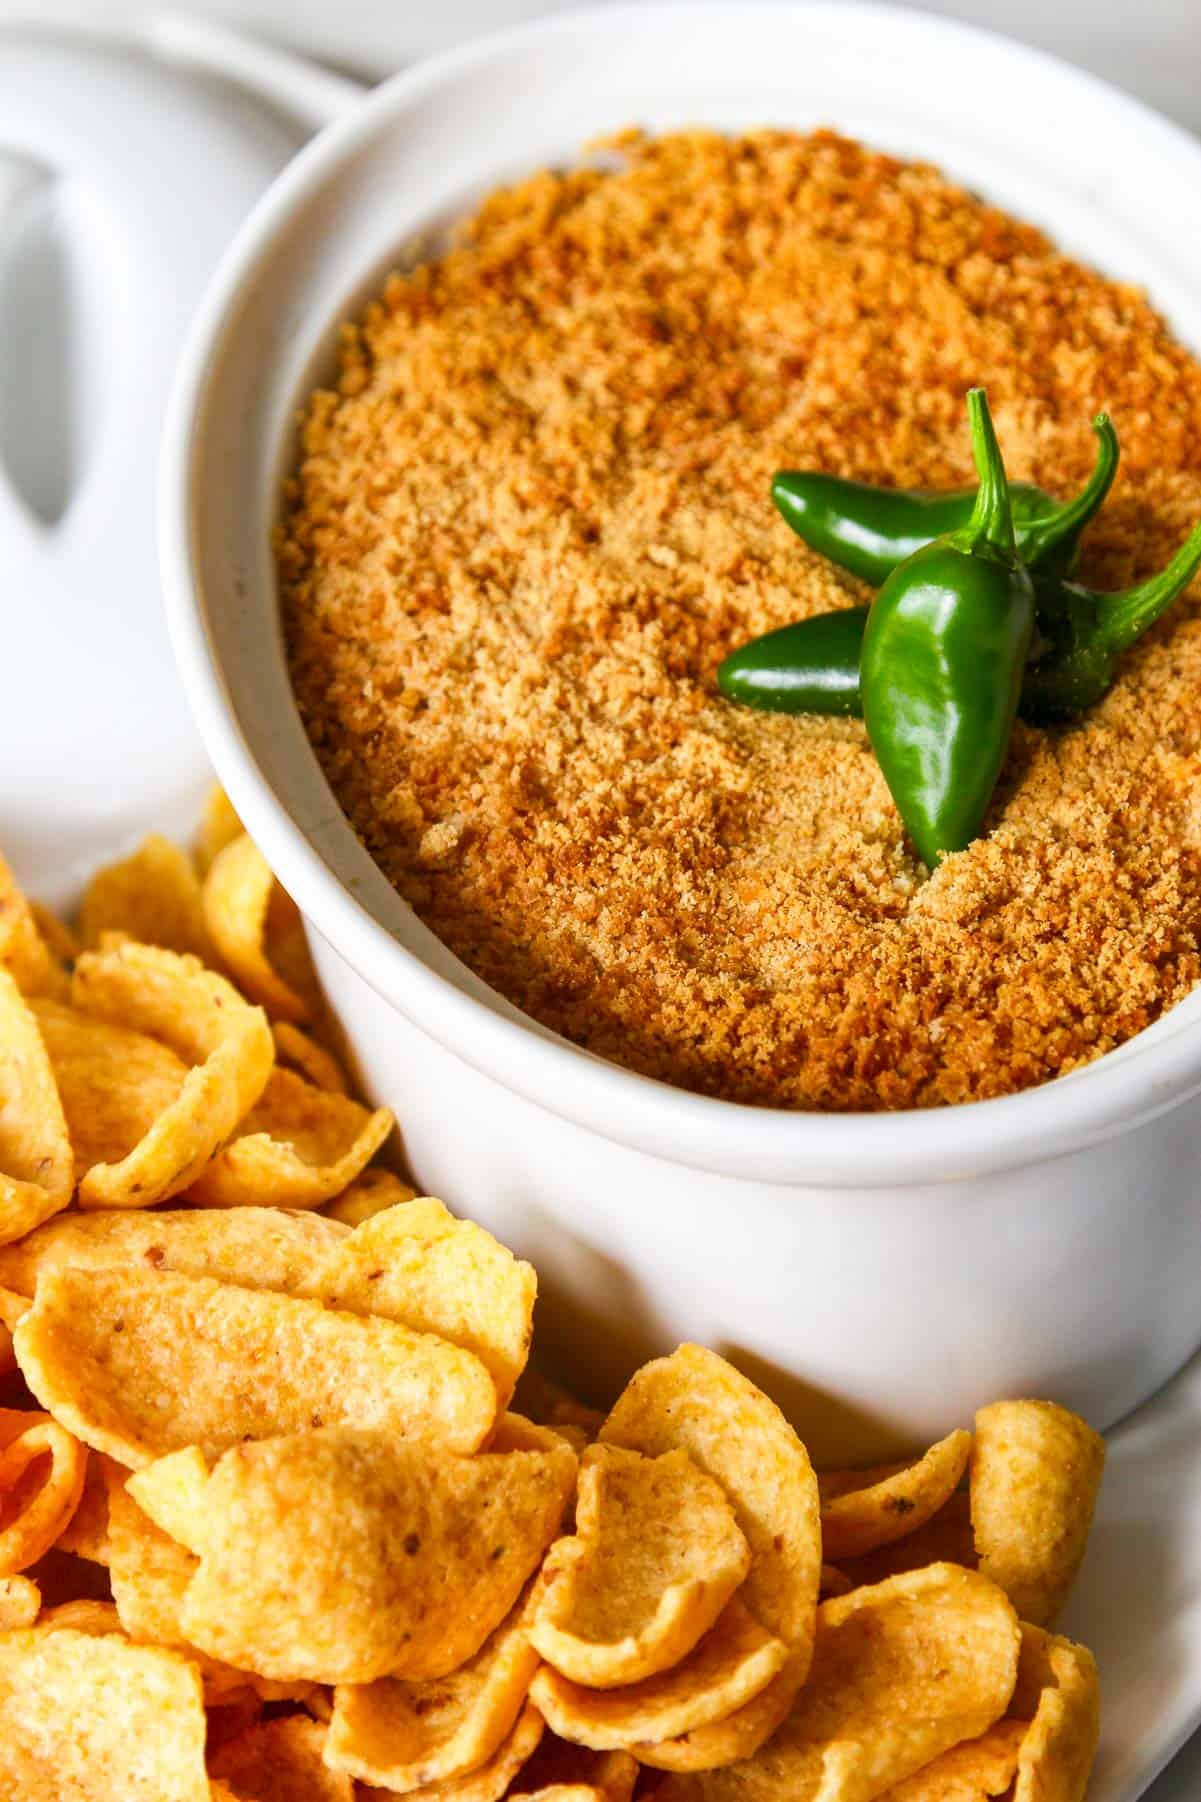 Looking down on golden brown baked hot jalapeno popper dip.